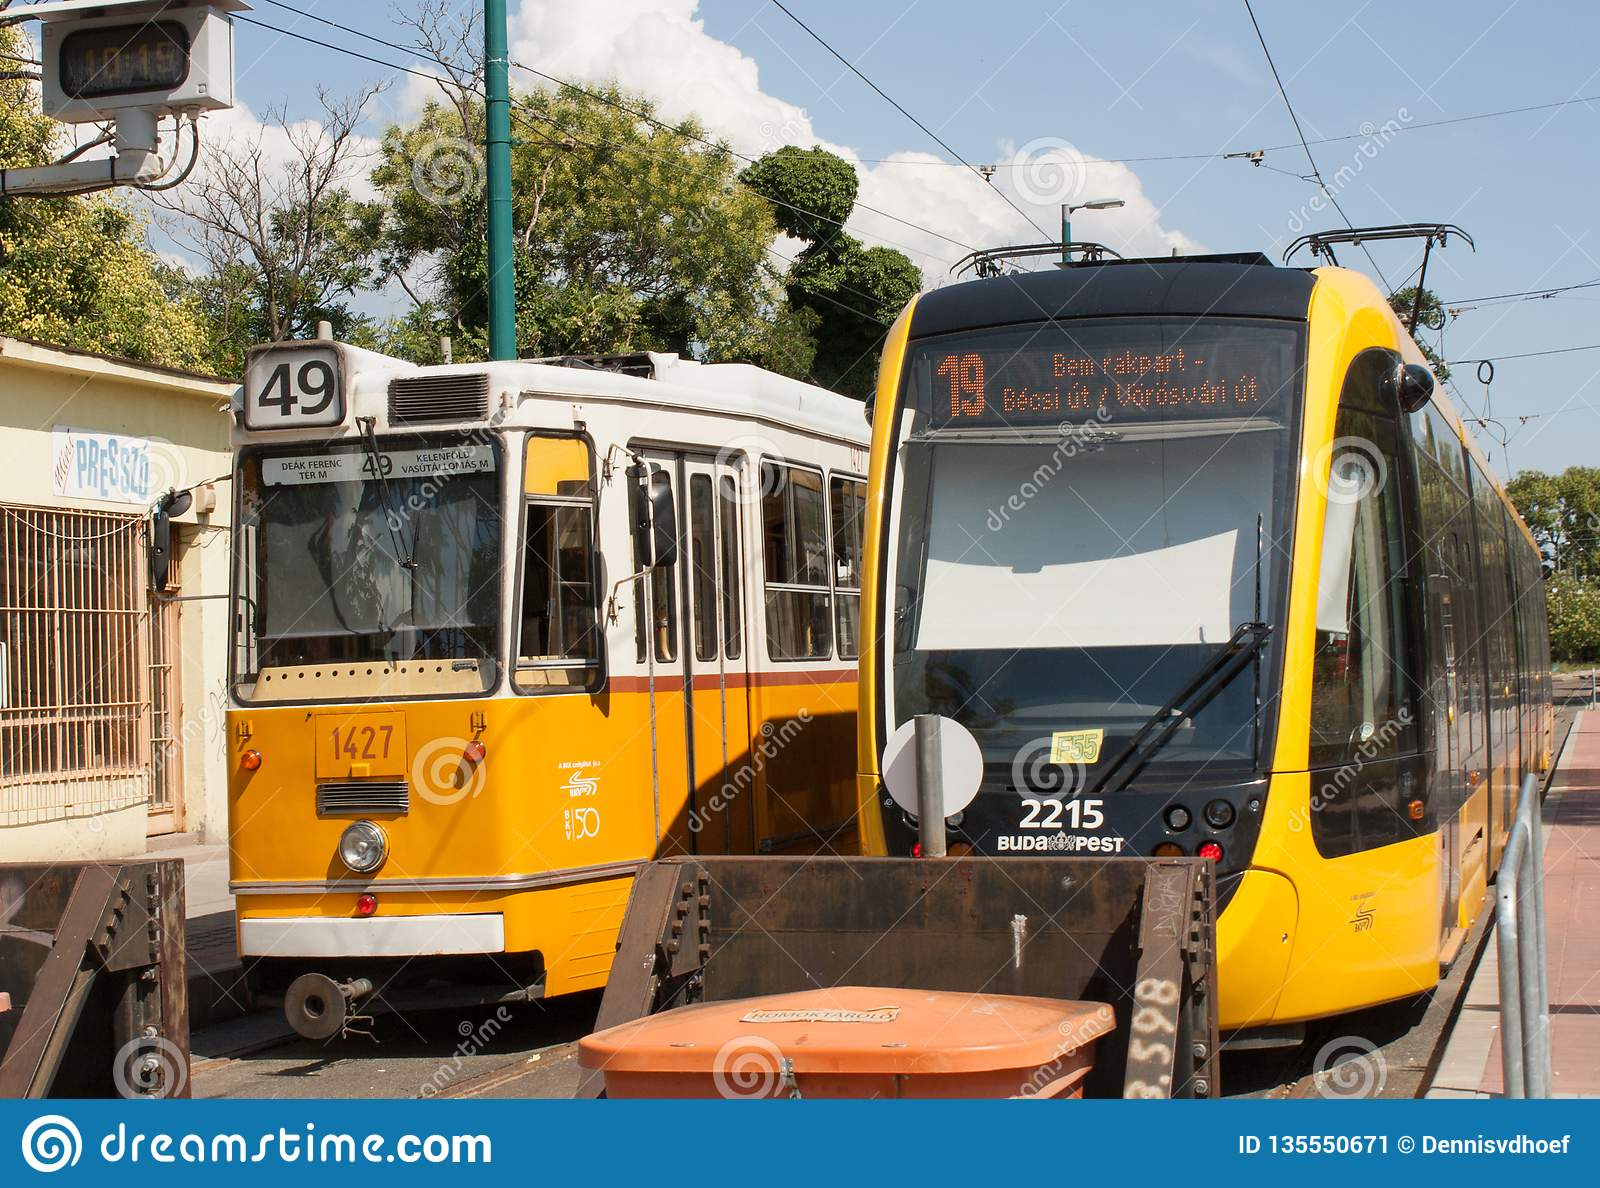 2 budapest trams.